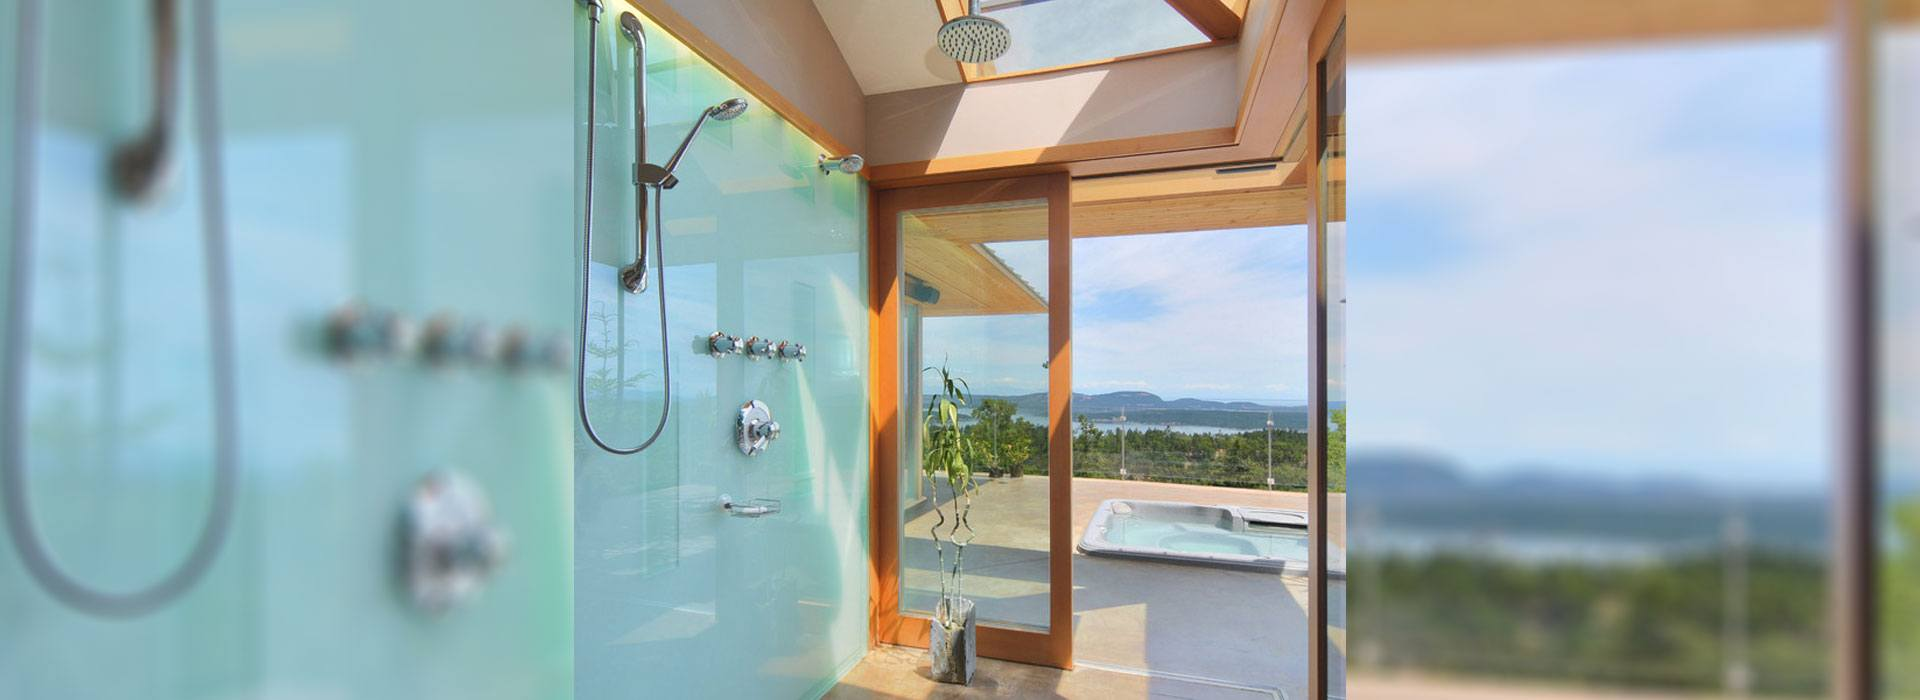 Colored Glass | Residential Gallery | Shower Backsplash | Anchor-Ventana Glass Company